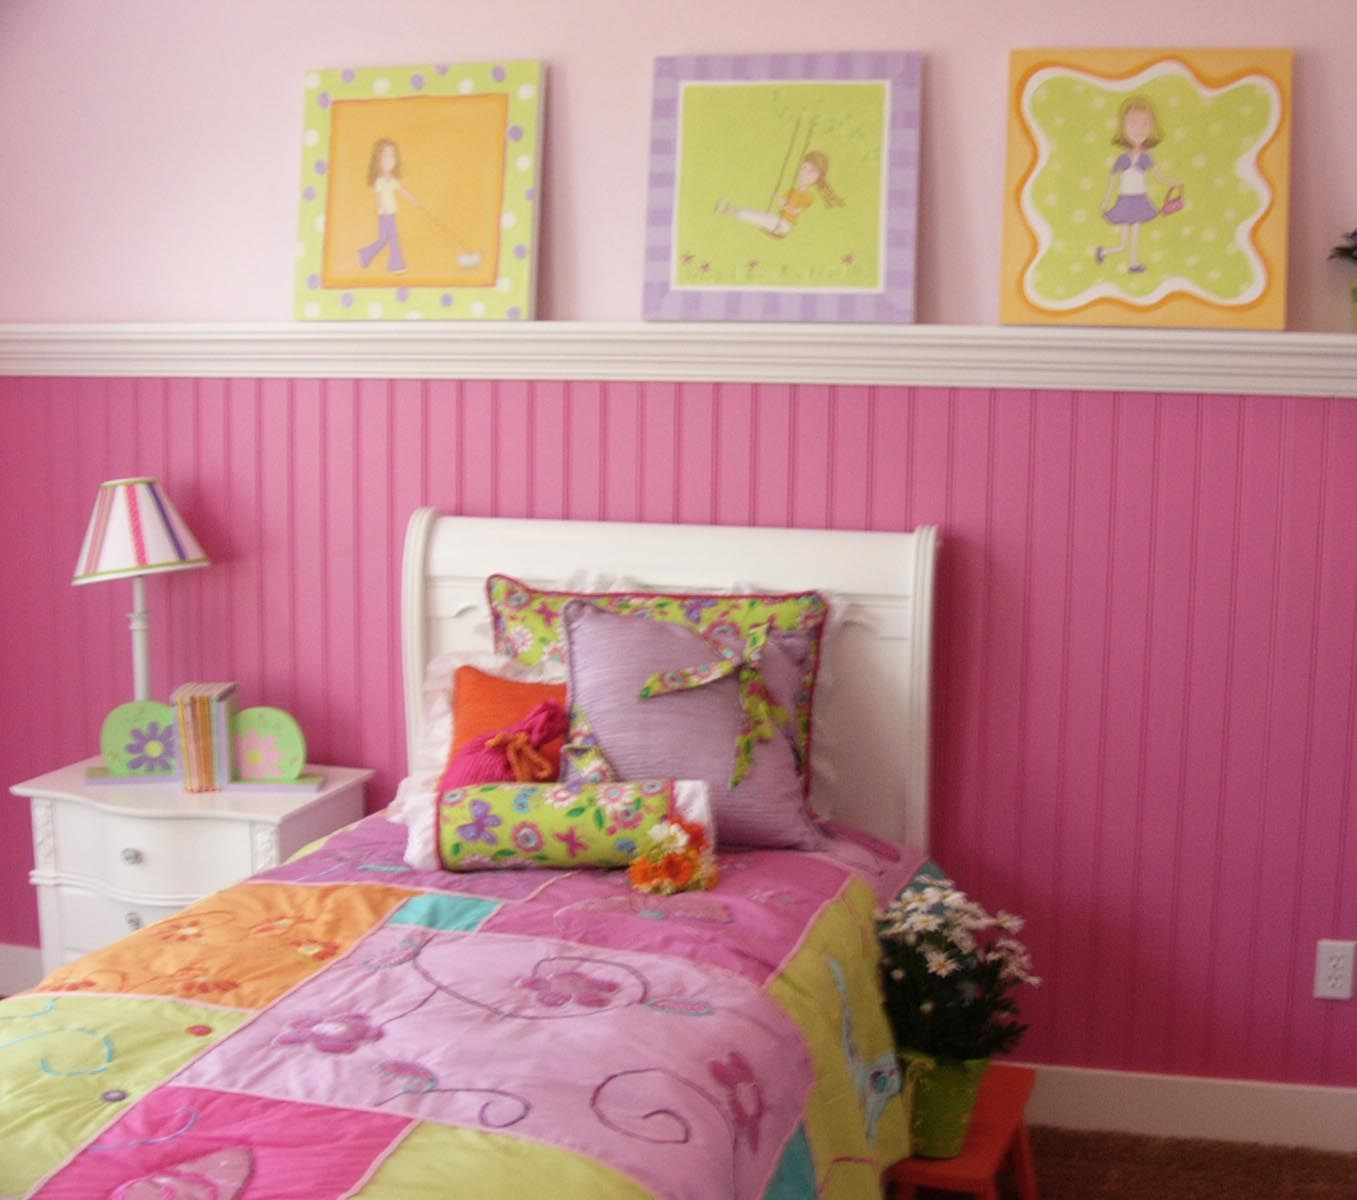 Cute and colorful teen girls room decor photos enter your blog name here - Cute bedroom ...